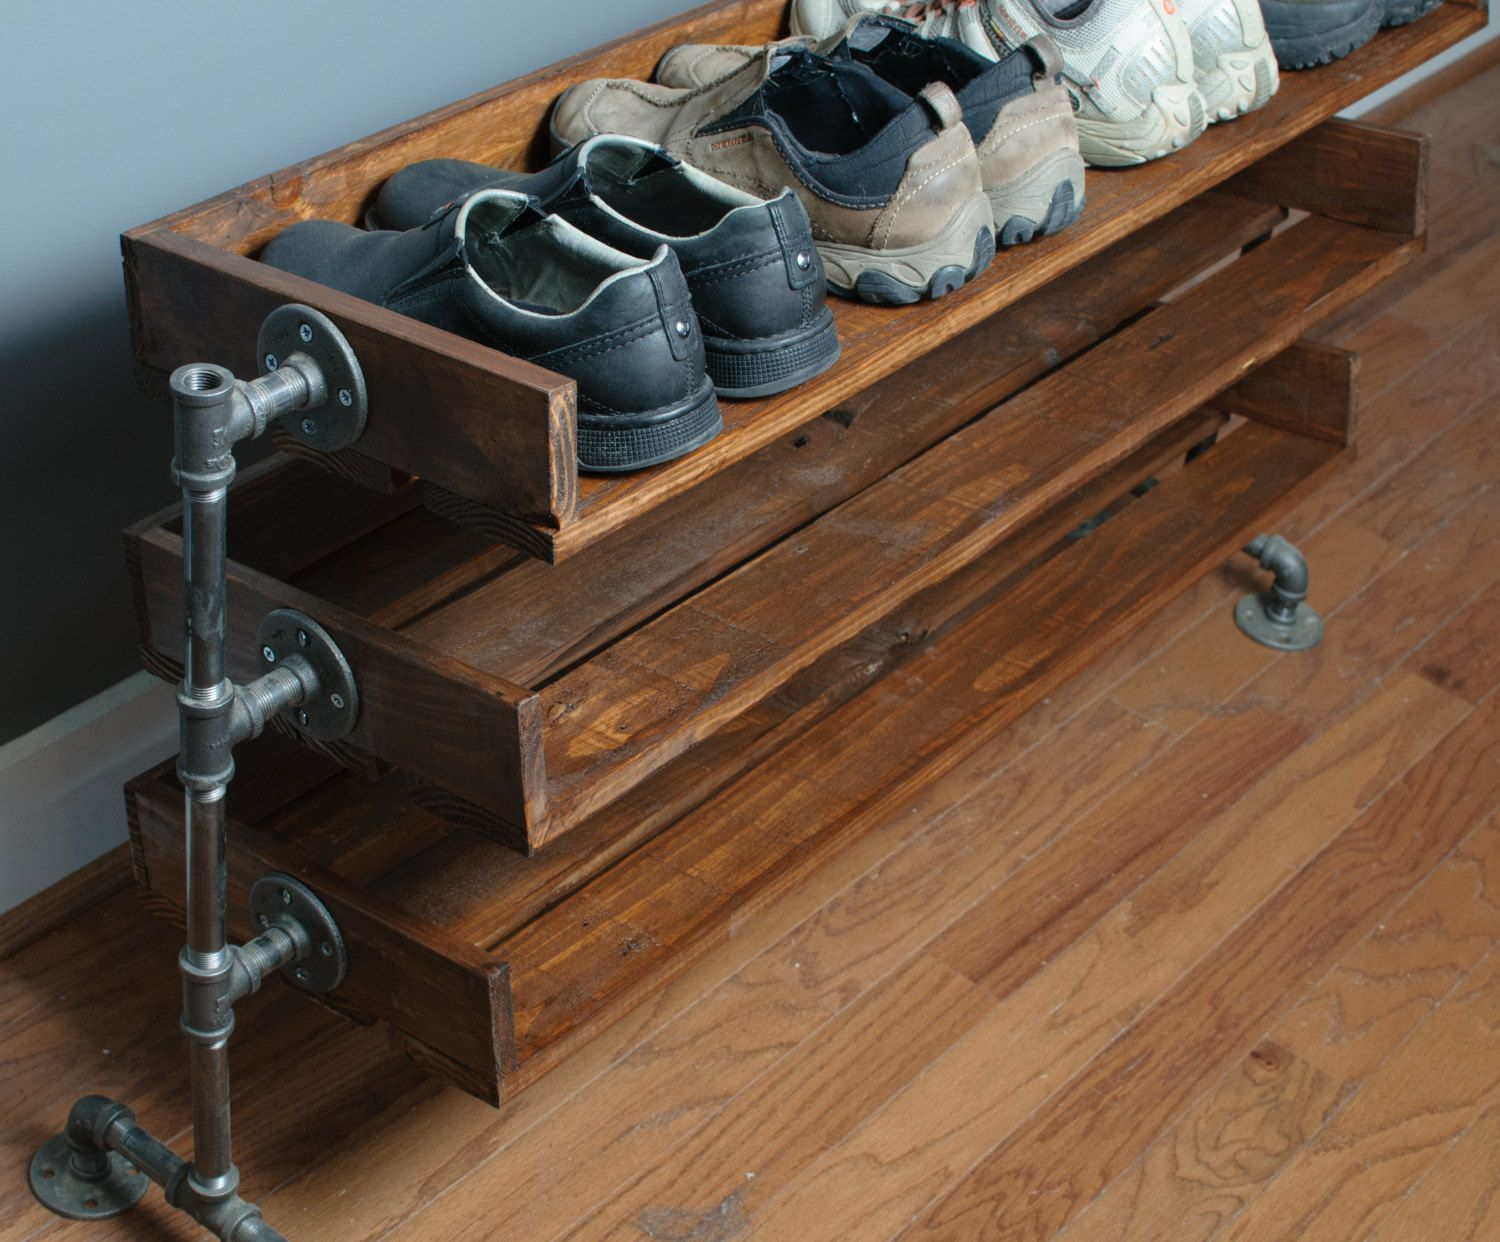 How To Make A Shoe Rack Rustic Wood Shoe Shelves With Pipe Stand Legs Shoes Stand Woods